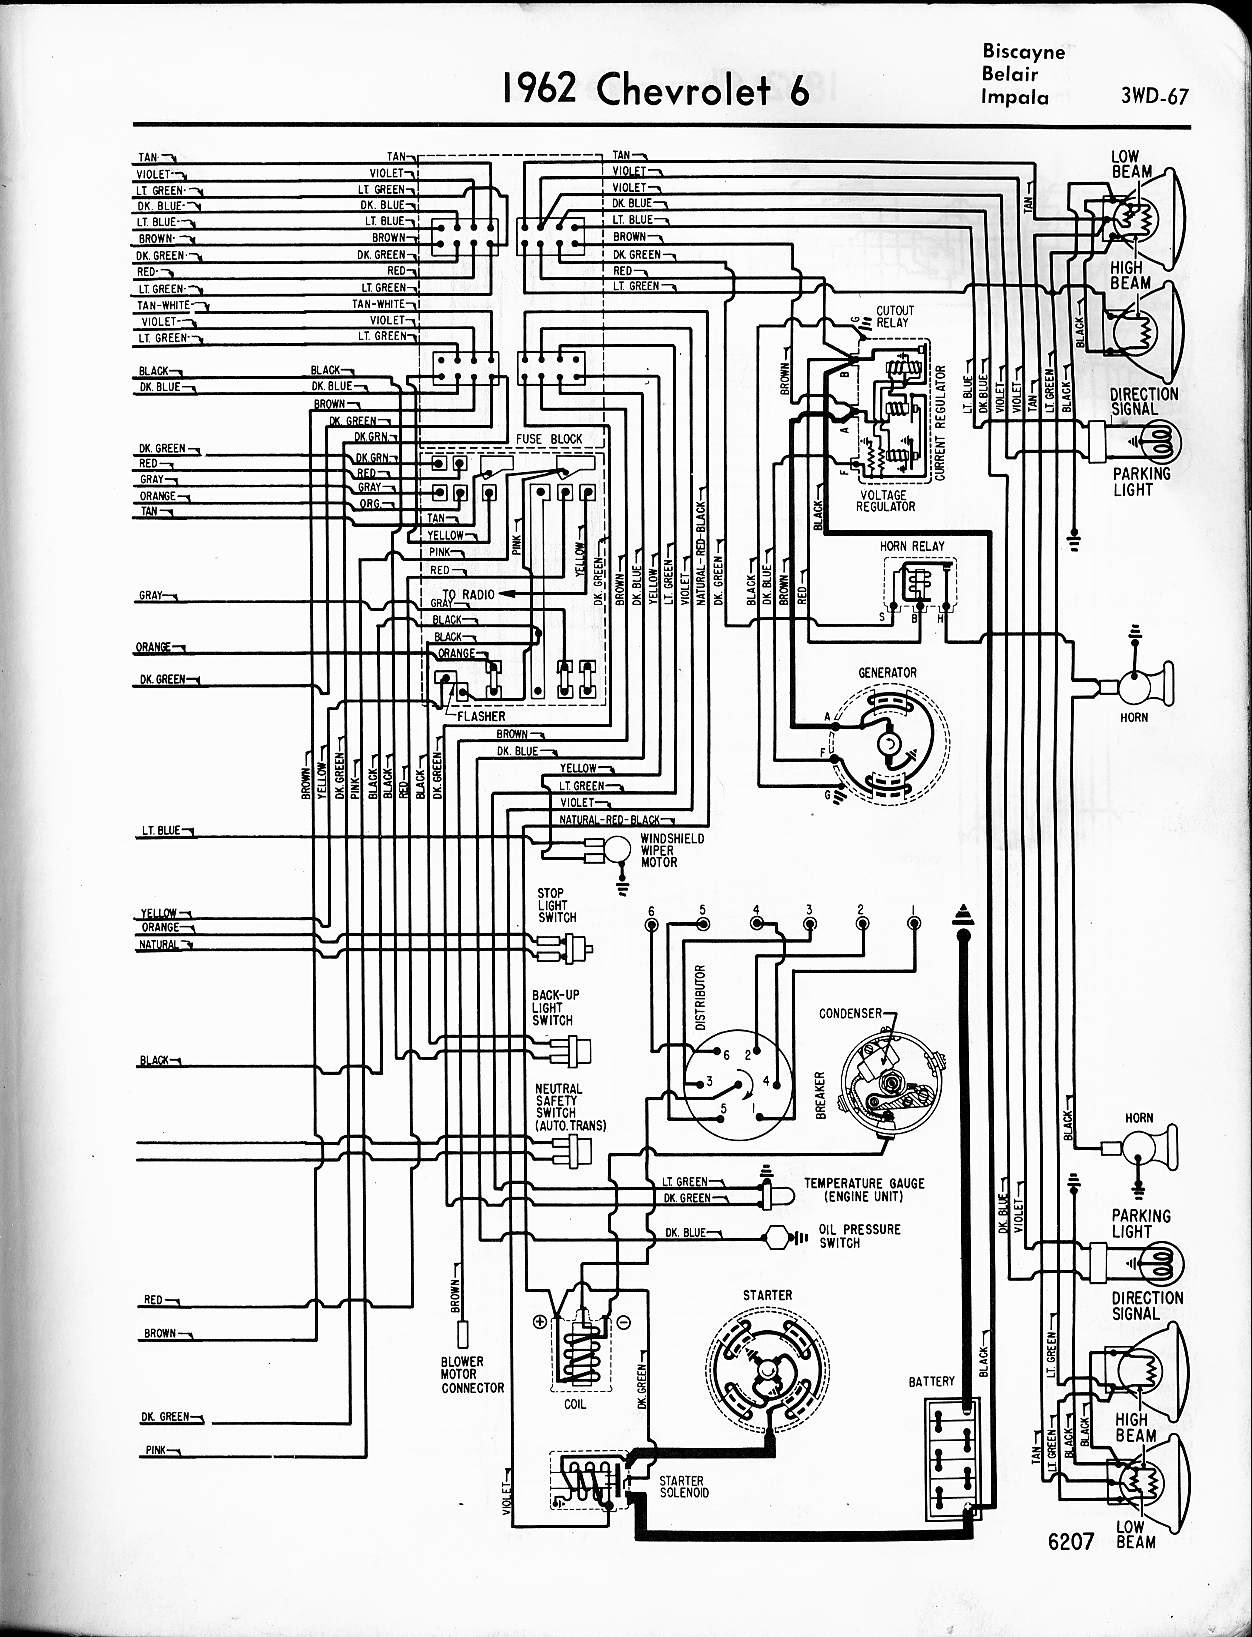 Chevy Impala Ignition Wiring - Wiring Diagram | 2005 Impala Engine Wiring Diagram |  | cars-trucks24.blogspot.com